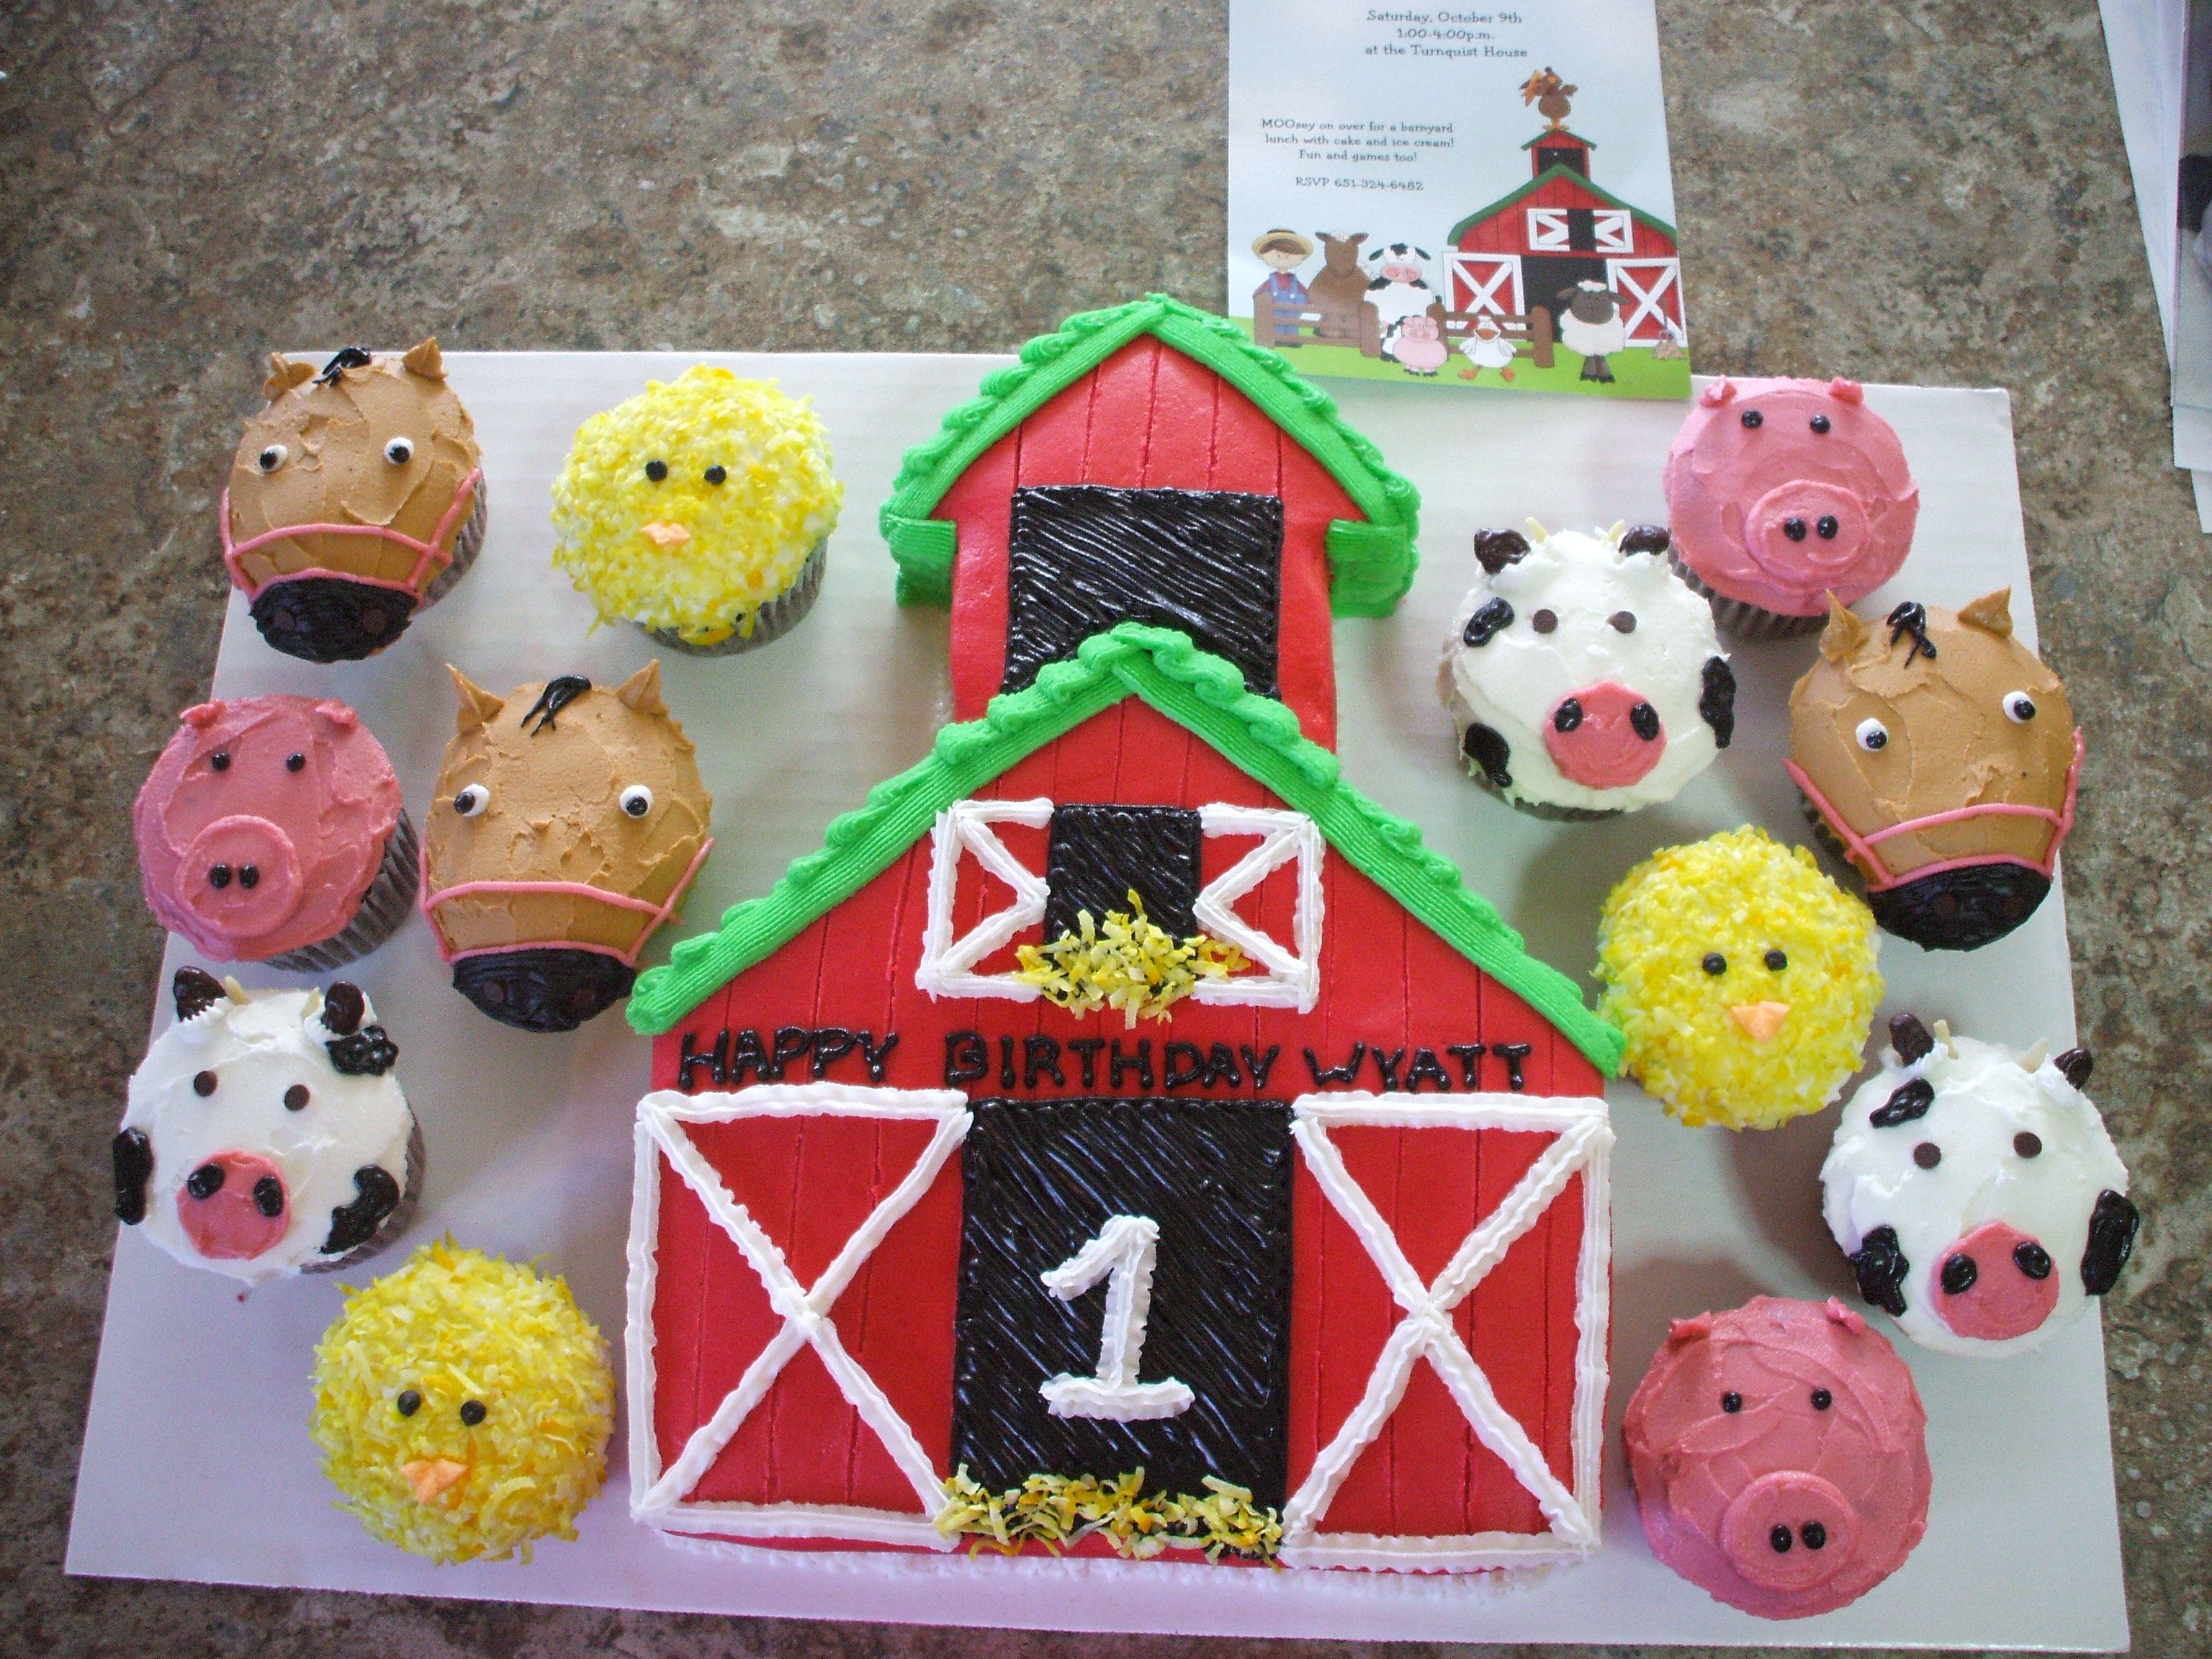 Cute Farm Cake I Made With Animal Cupcakes